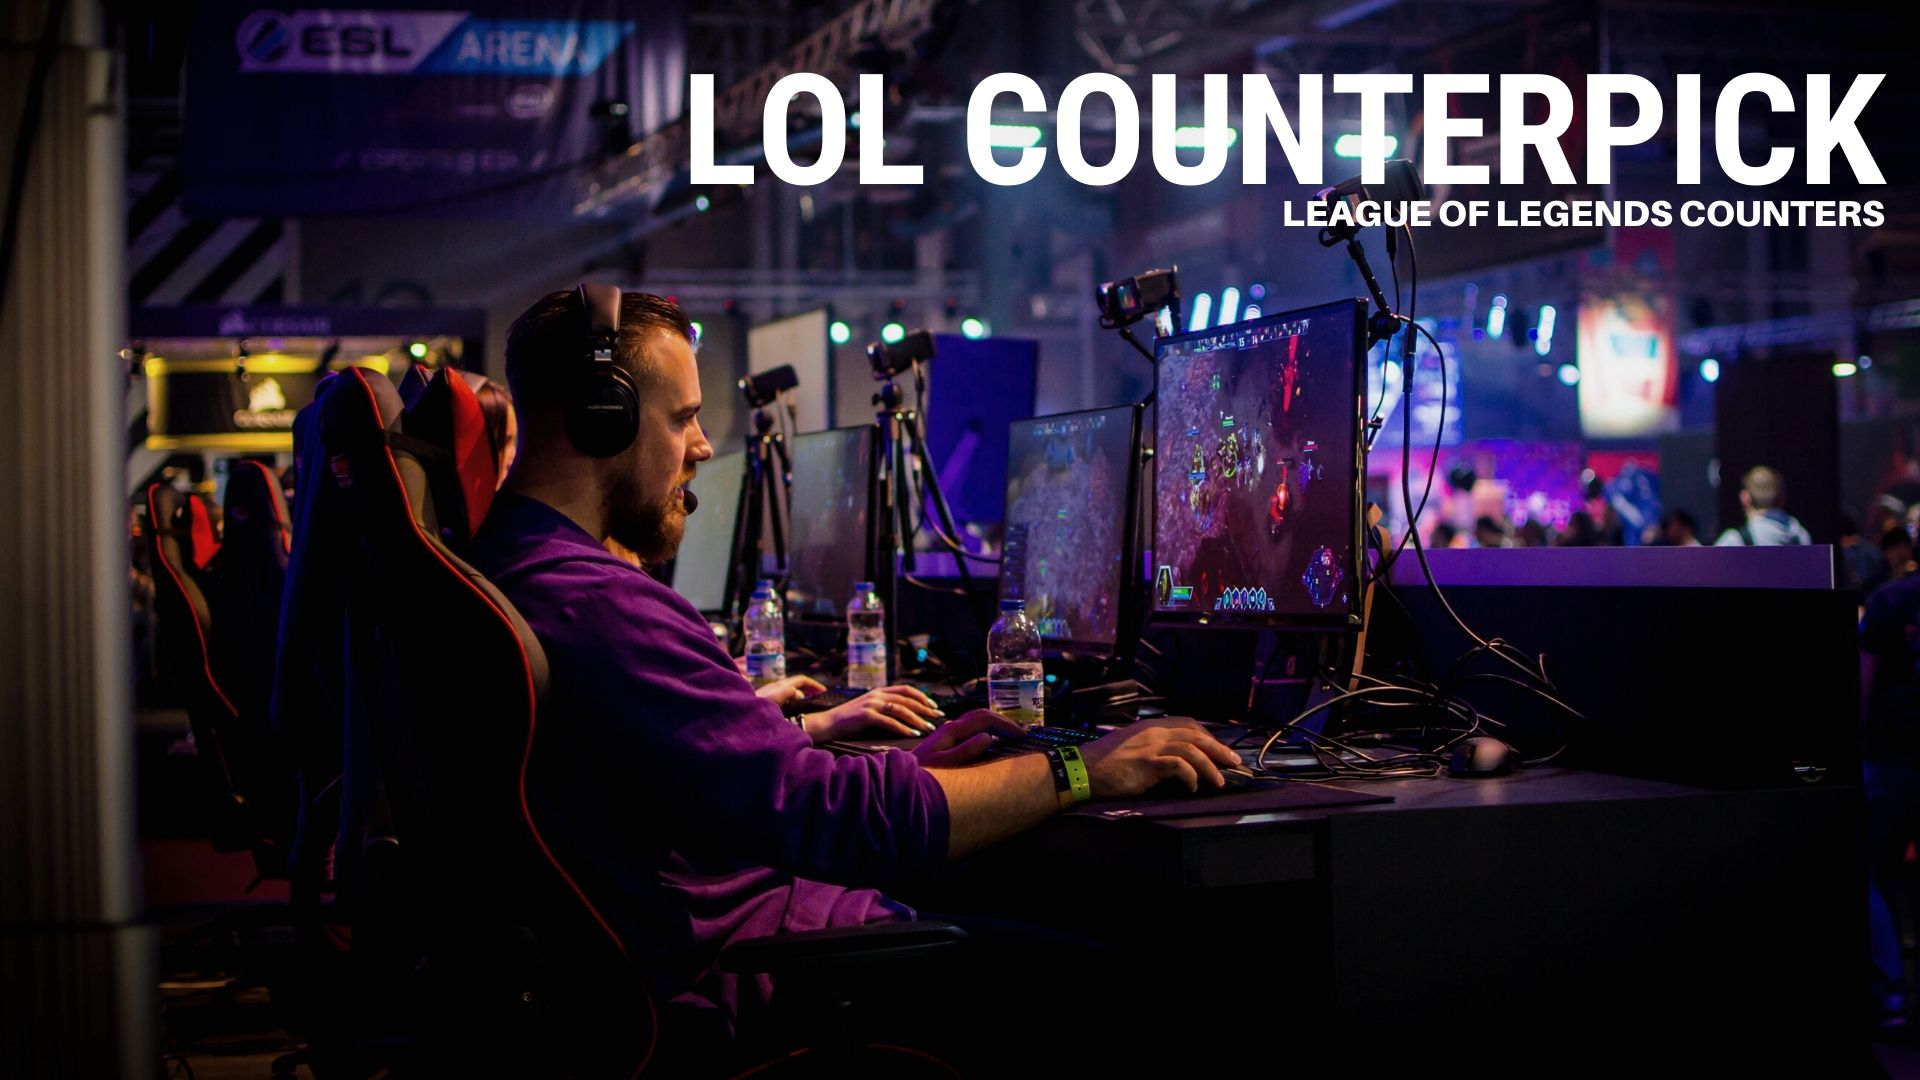 Lol Counterpick League Of Legends Counters Win rate, gd@15 and more! lol counterpick league of legends